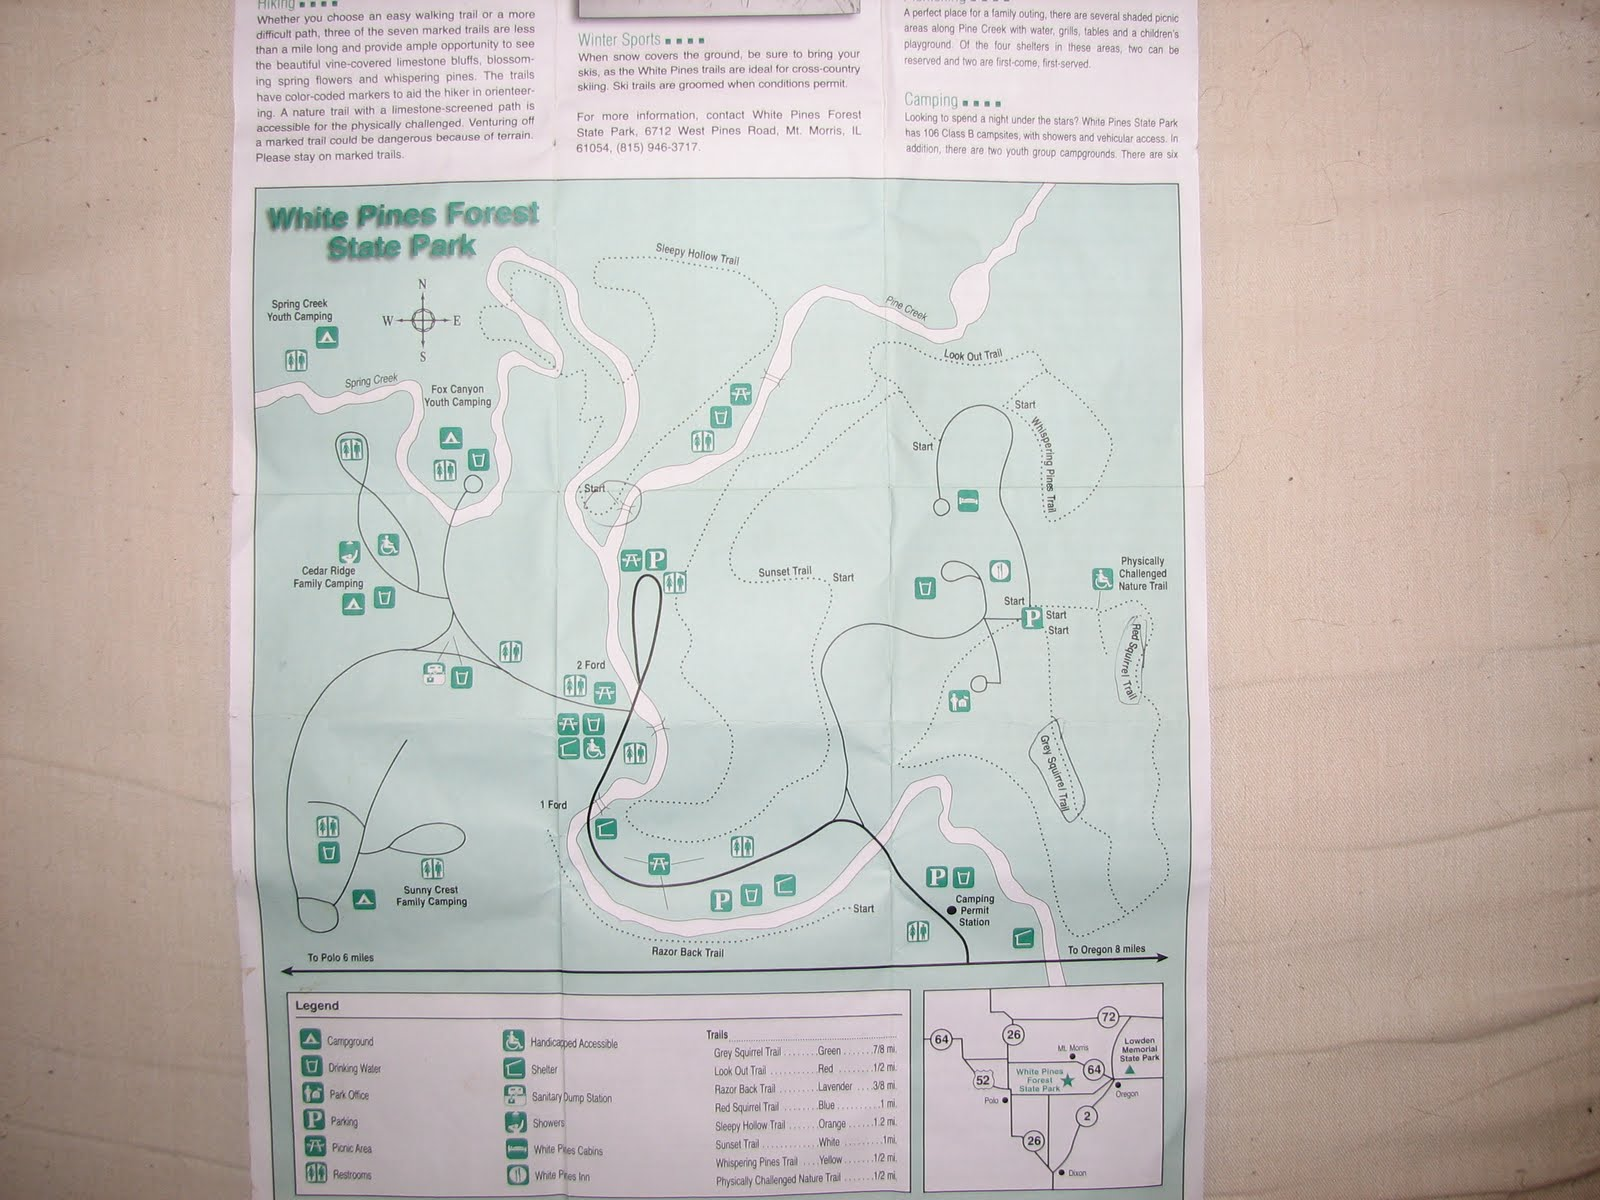 Illinois State Parks Map on illinois state map with cities and towns, illinois beach state park, louisville parks map, chain o'lakes state park il map, illinois state parking map, illinois state school districts map, illinois capitol complex map, illinois state police investigation, illinois congressional delegation map, champaign illinois state map, illinois state park rangers, kankakee river state park trail map, illinois state prisons map, illinois real estate map, illinois university campus map, illinois rest areas map, north dakota parks map, illinois map schaumburg il, walnut point state park map, buffalo rock state park map,